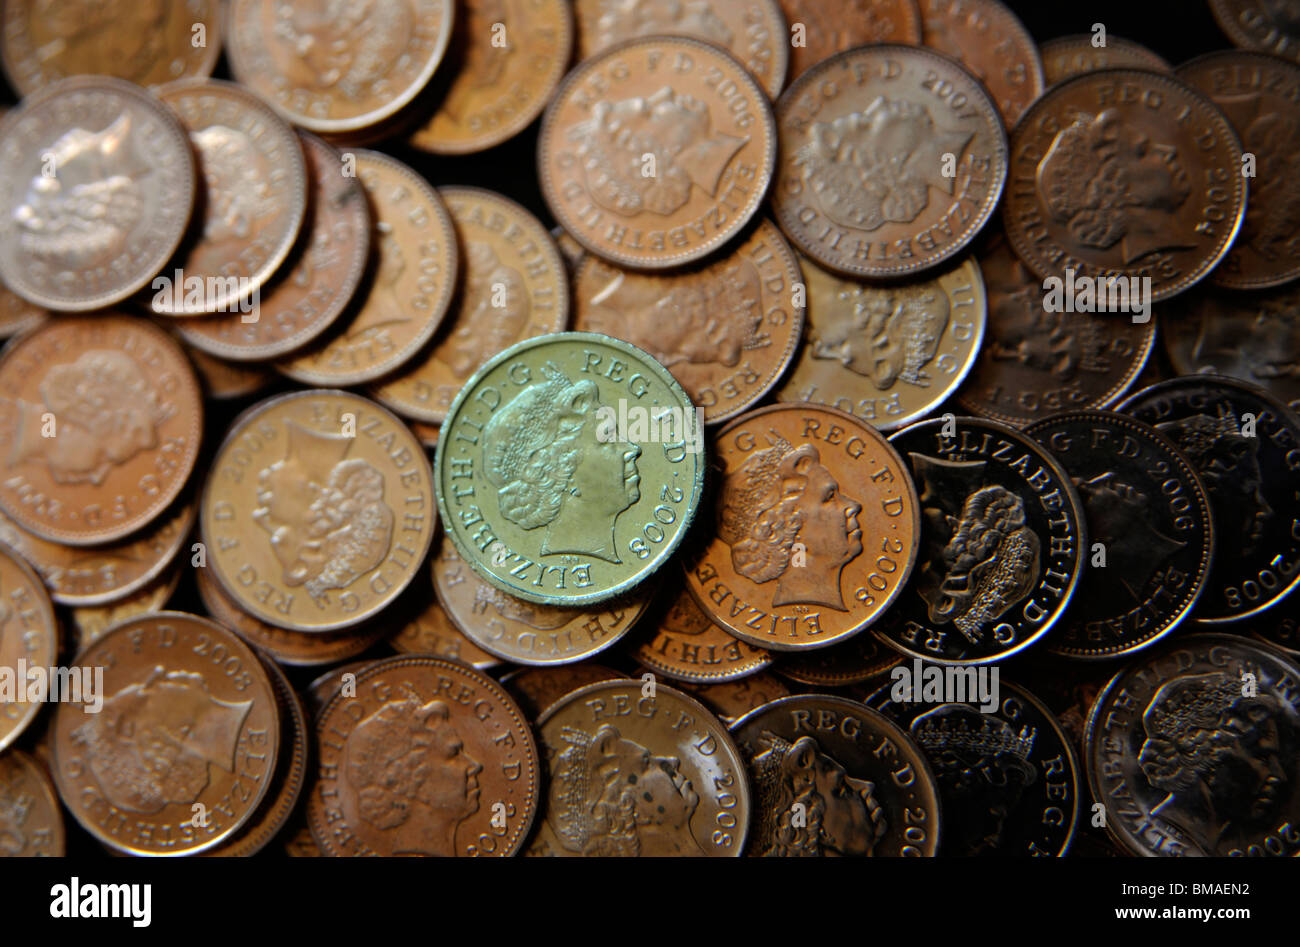 Pound coin with pennies. - Stock Image